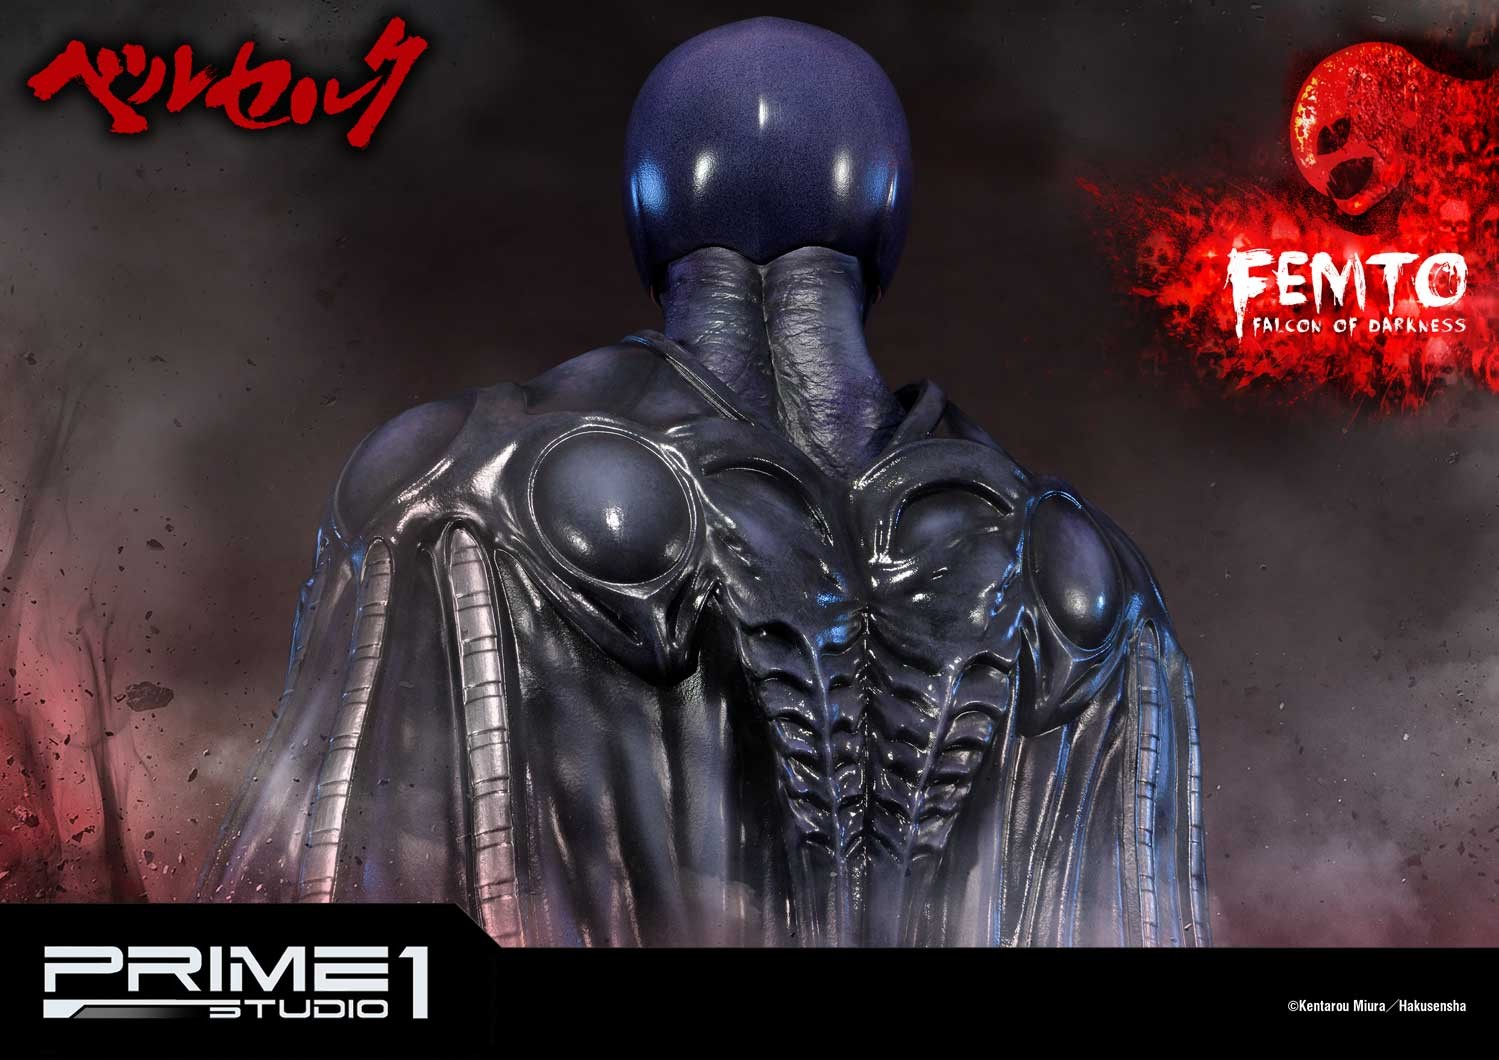 Link a Berserk Femto Falcon of Darkness Ultimate Premium Masterline Prime 1 Studio Itakon.it 29